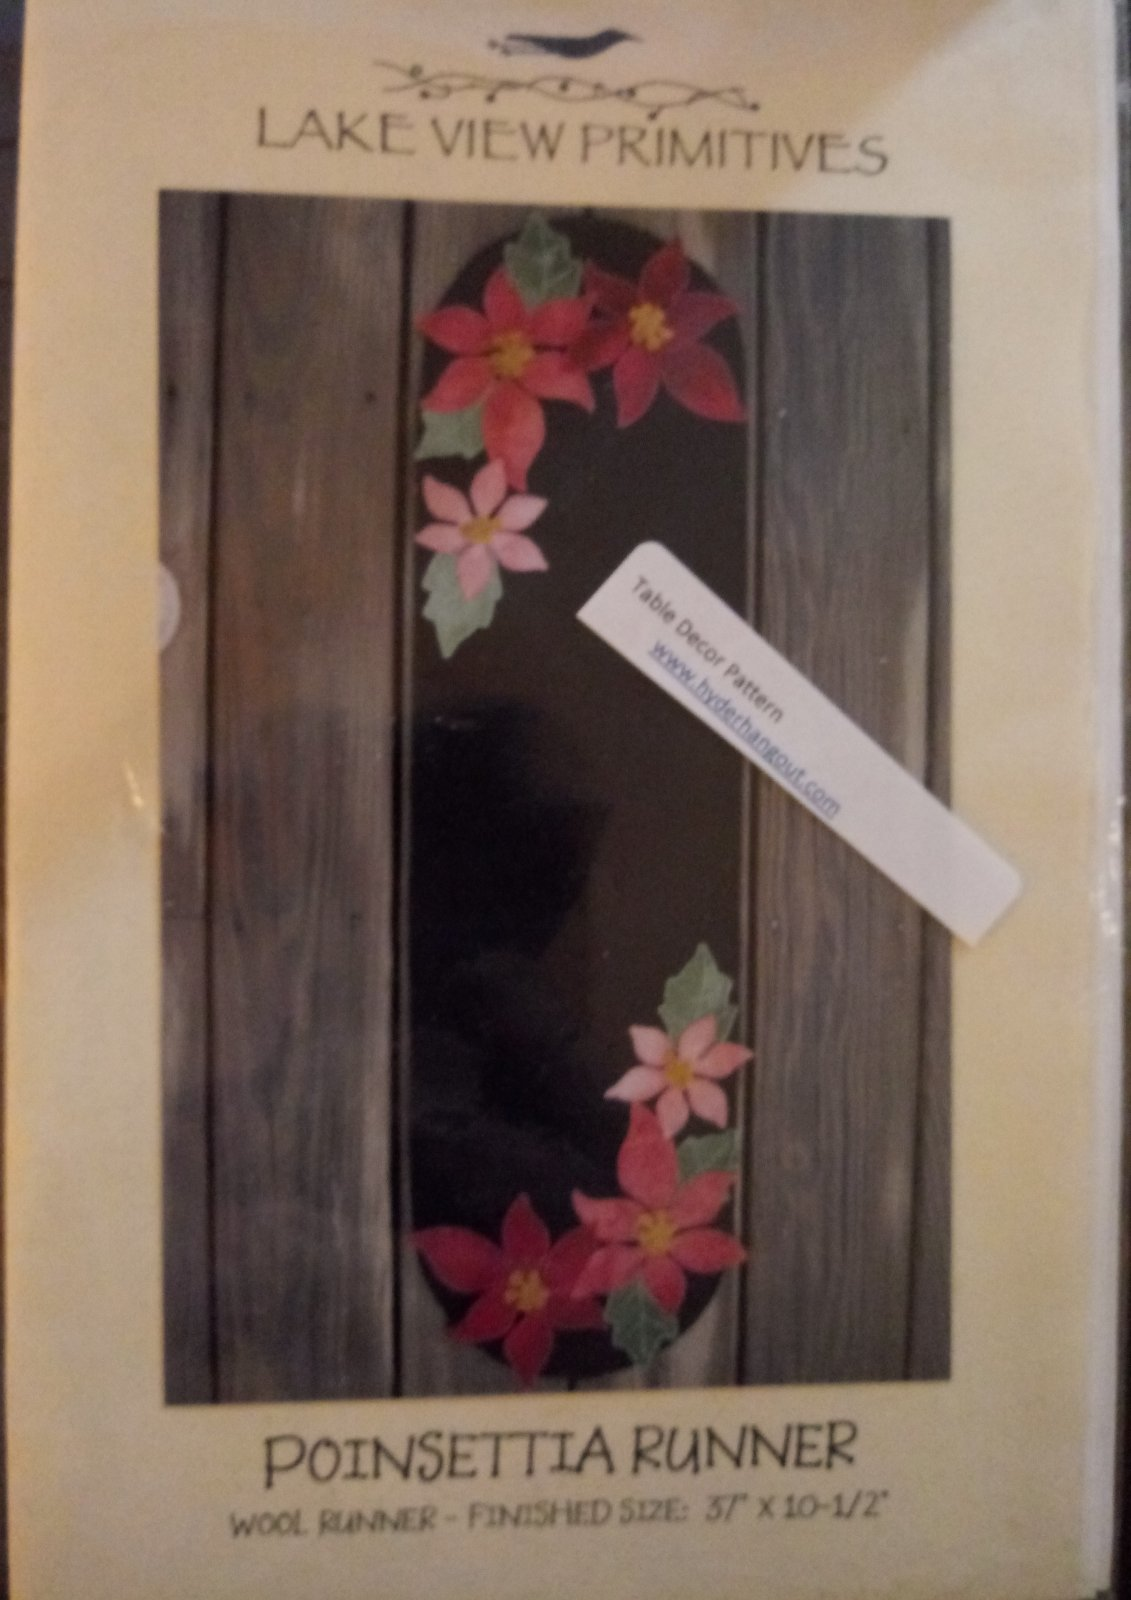 Poinsettia Runner by Lakeview Primitives  Wool Runner 37 x 10 1/2  #463